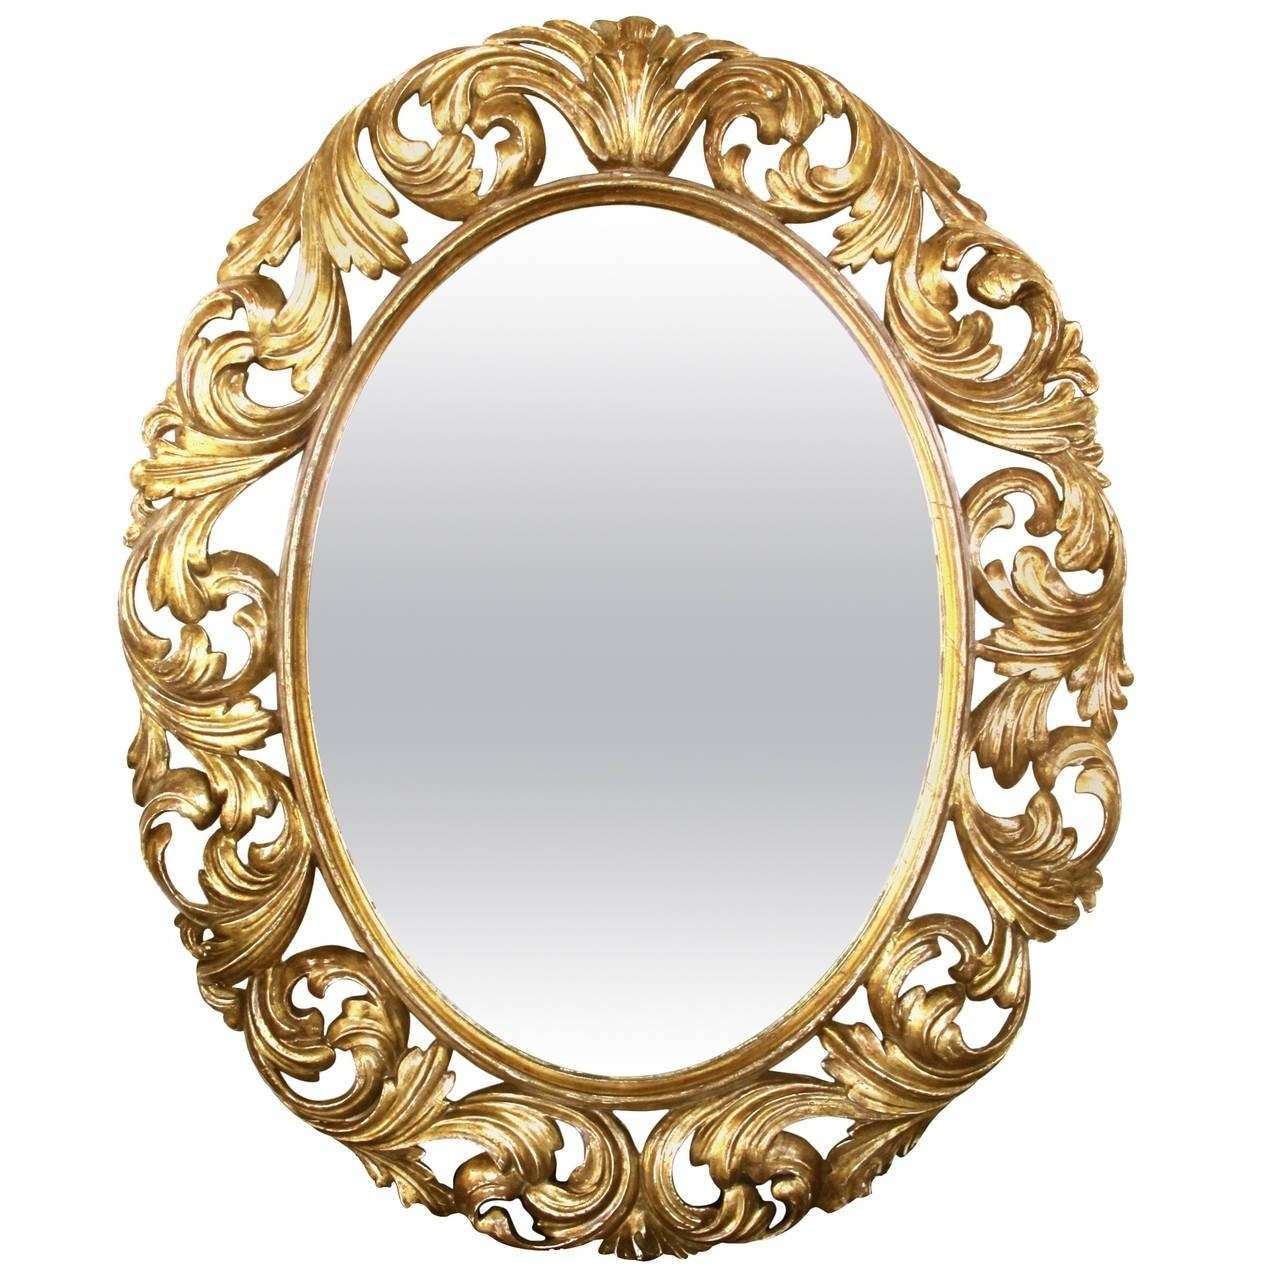 Well Carved Italian Baroque Style Oval Giltwood Mirror For Sale At Intended For Baroque Style Mirrors (View 23 of 25)